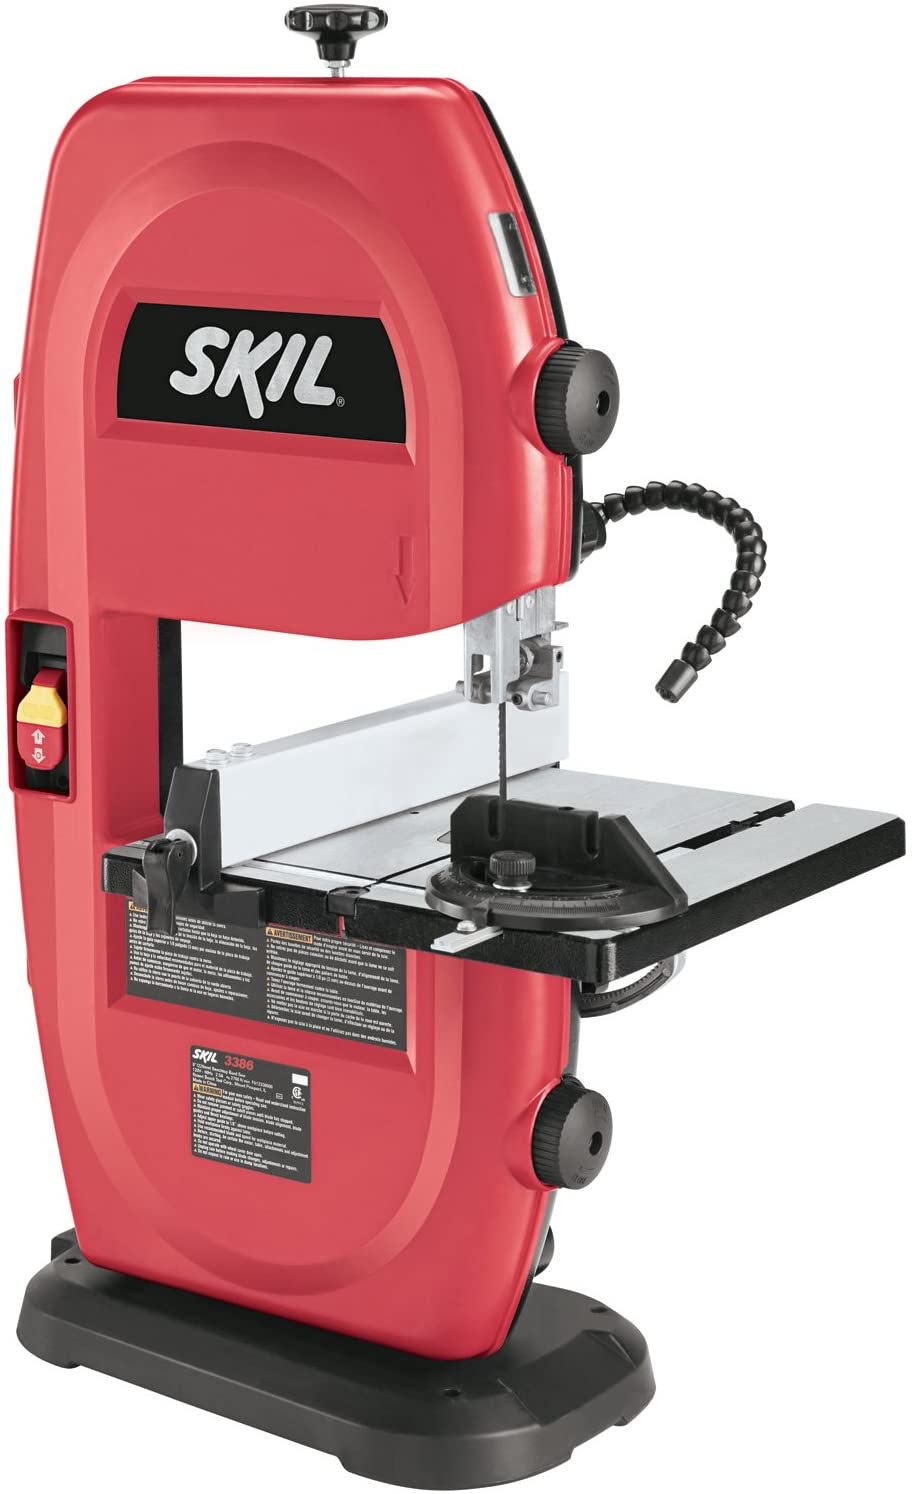 SKIL 3386-01 120-Volt Band Saw with Light